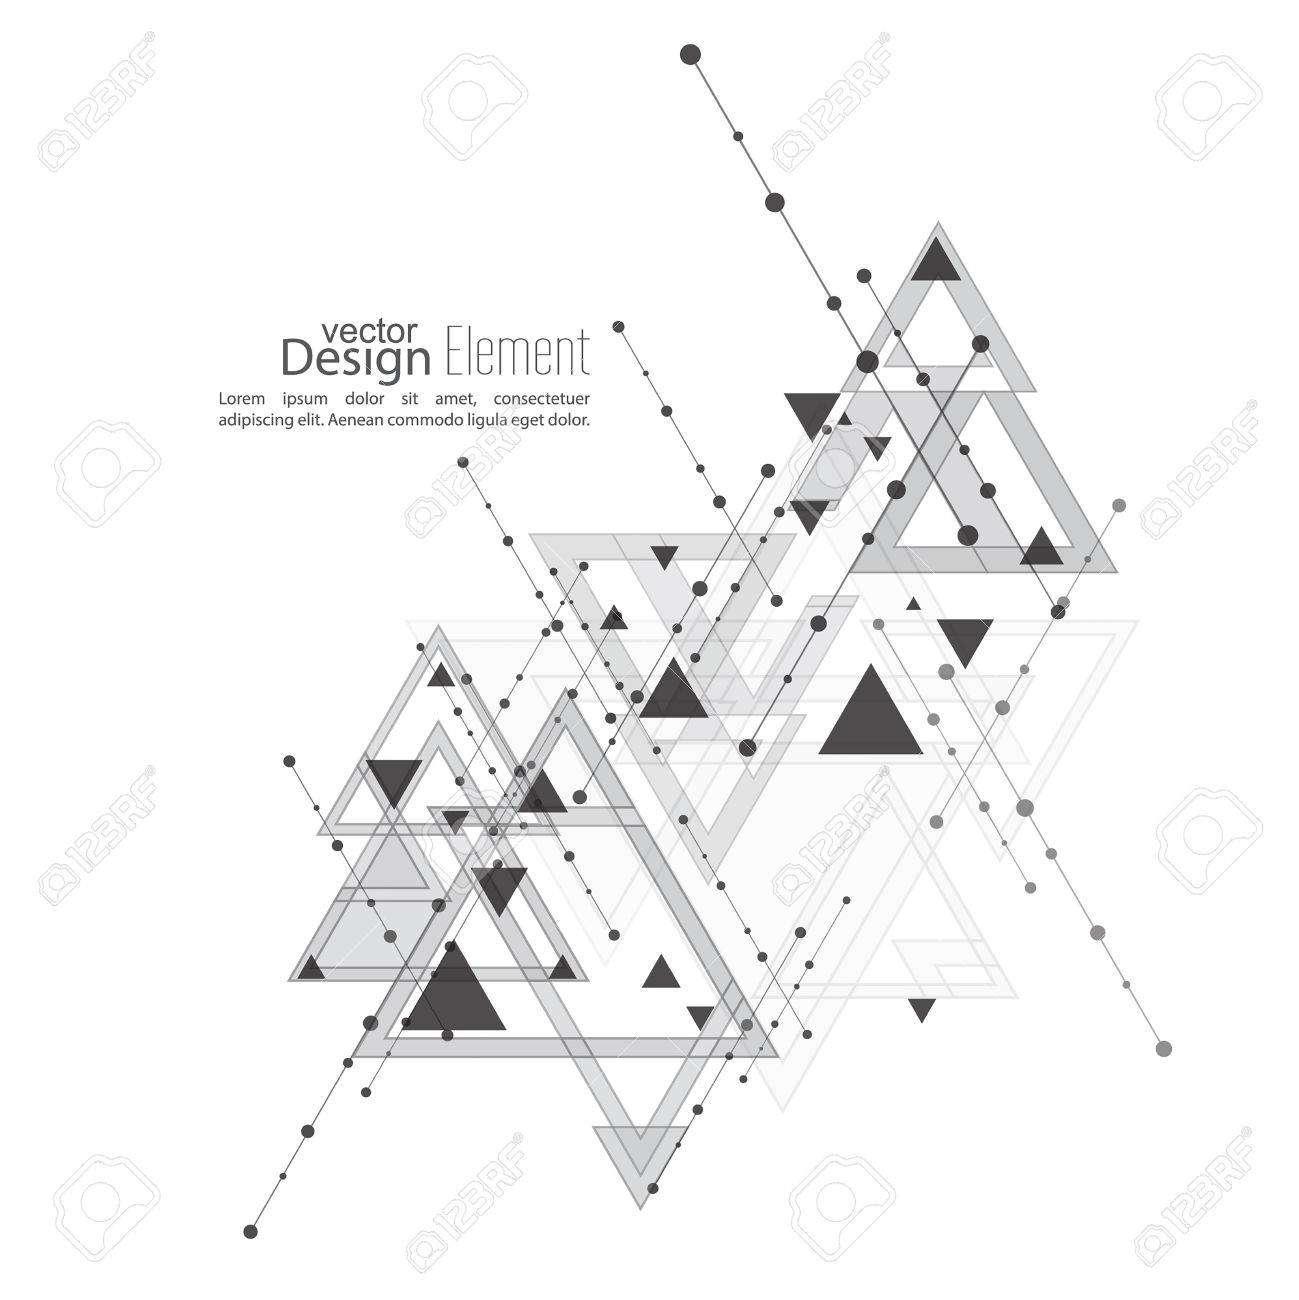 Abstract Vector Background With Geometric Shapes Intersecting